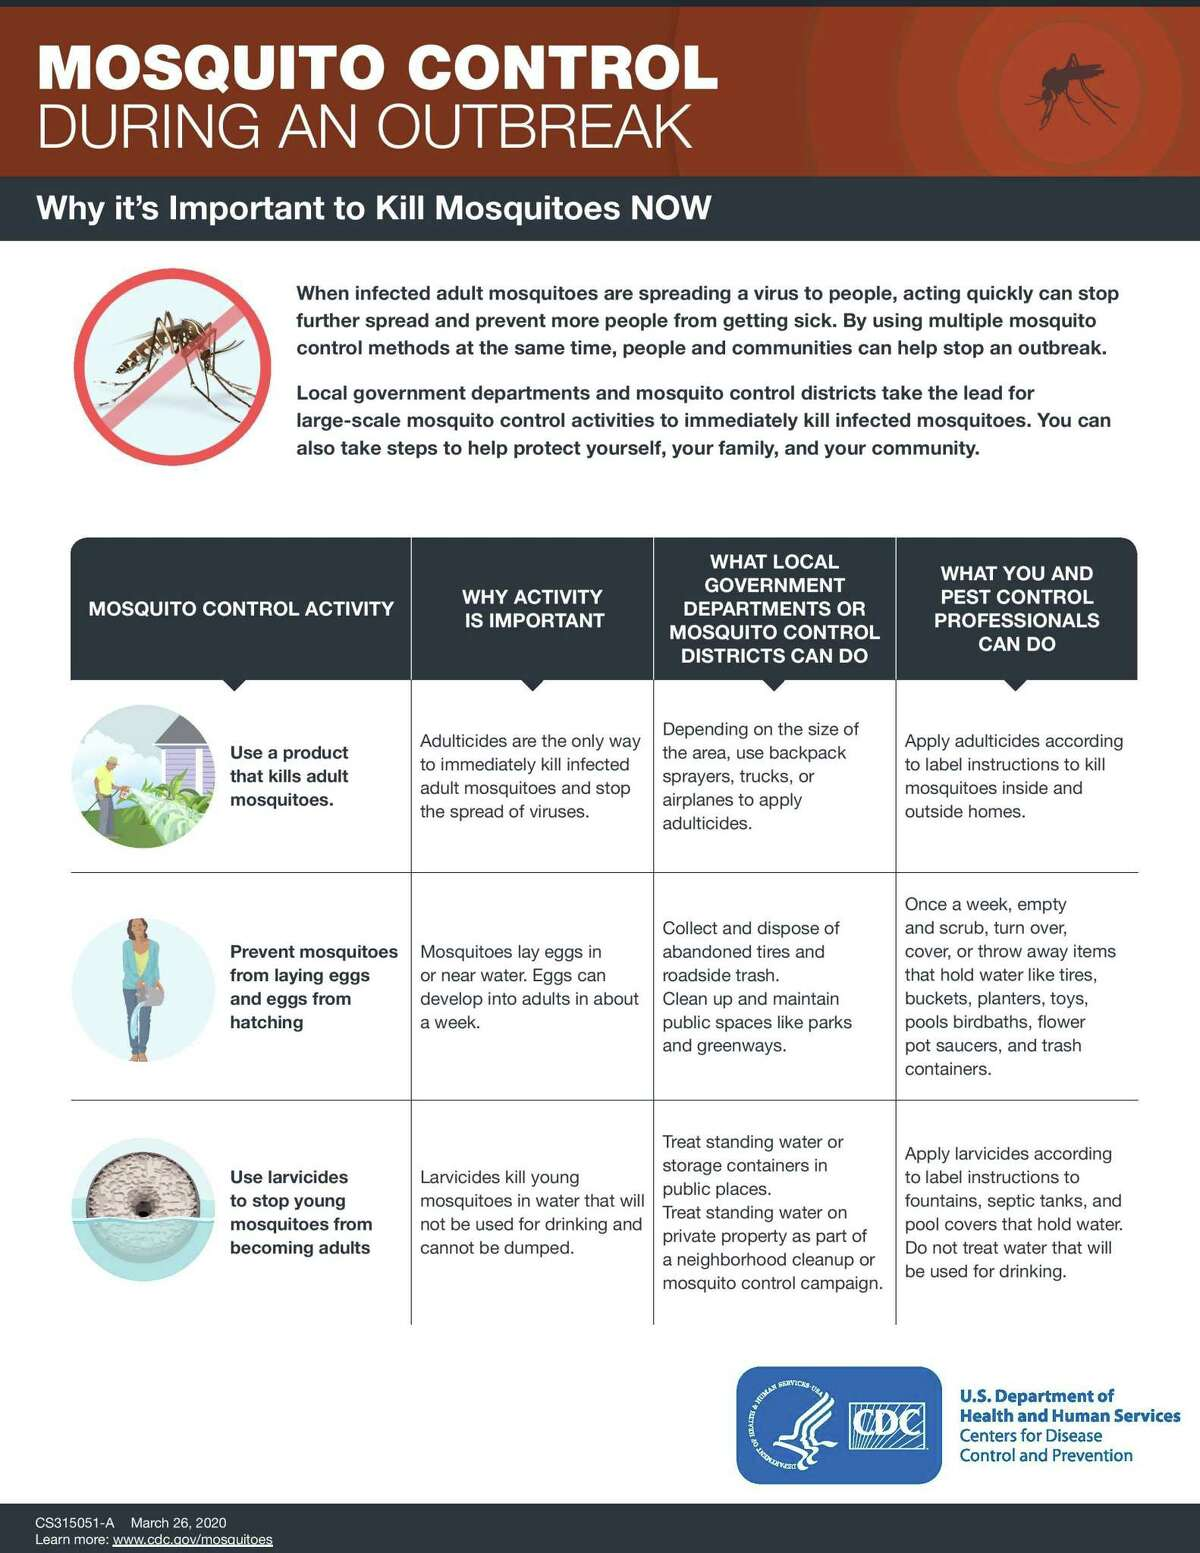 The Centers for Disease Control reports on the importance of controlling mosquitoes.